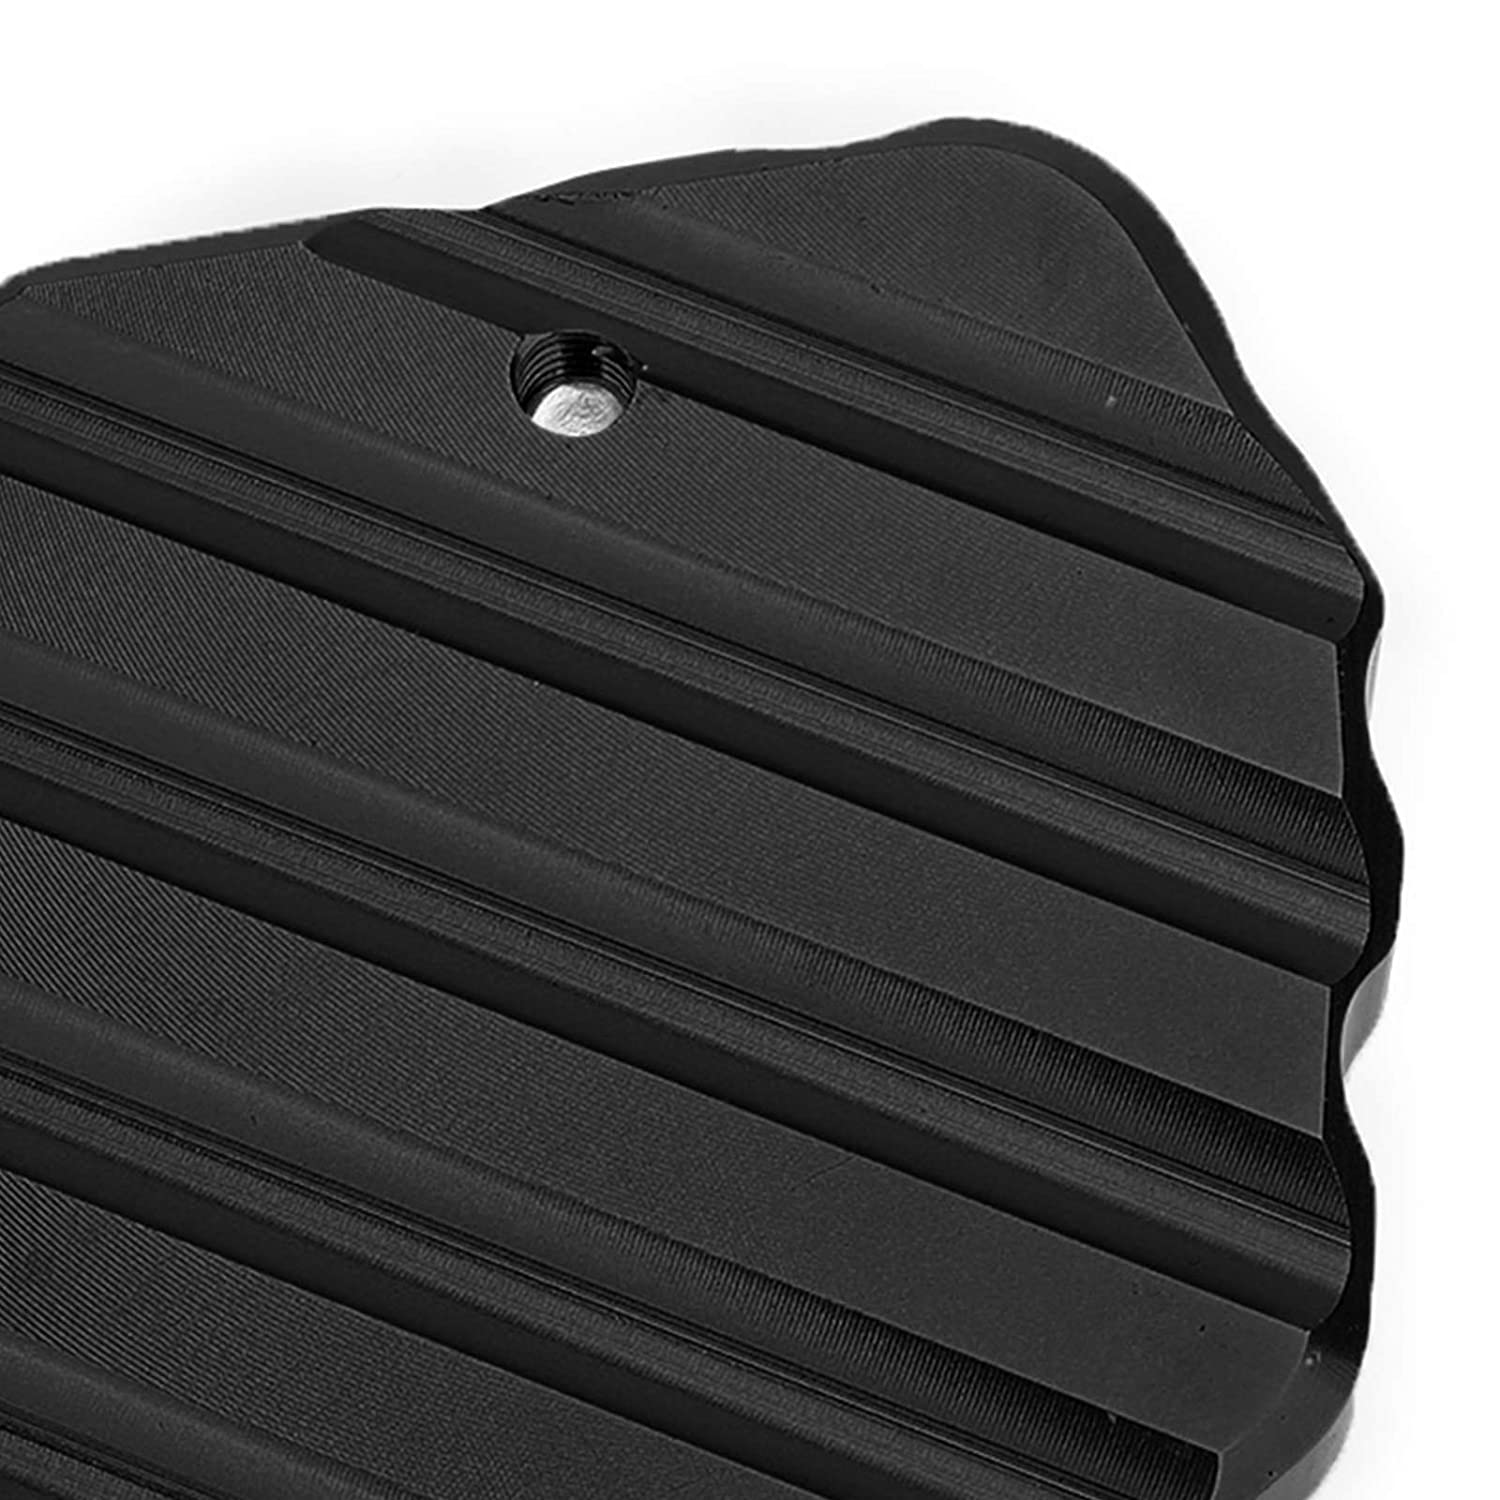 Artudatech Estensione Cavalletto Moto Pad Cavalletto Moto Ingranditore del Cavalletto Pad di Estensione del Supporto Laterale Cavalletto per Yamaha MT 09 FZ 09 14-18 XSR900